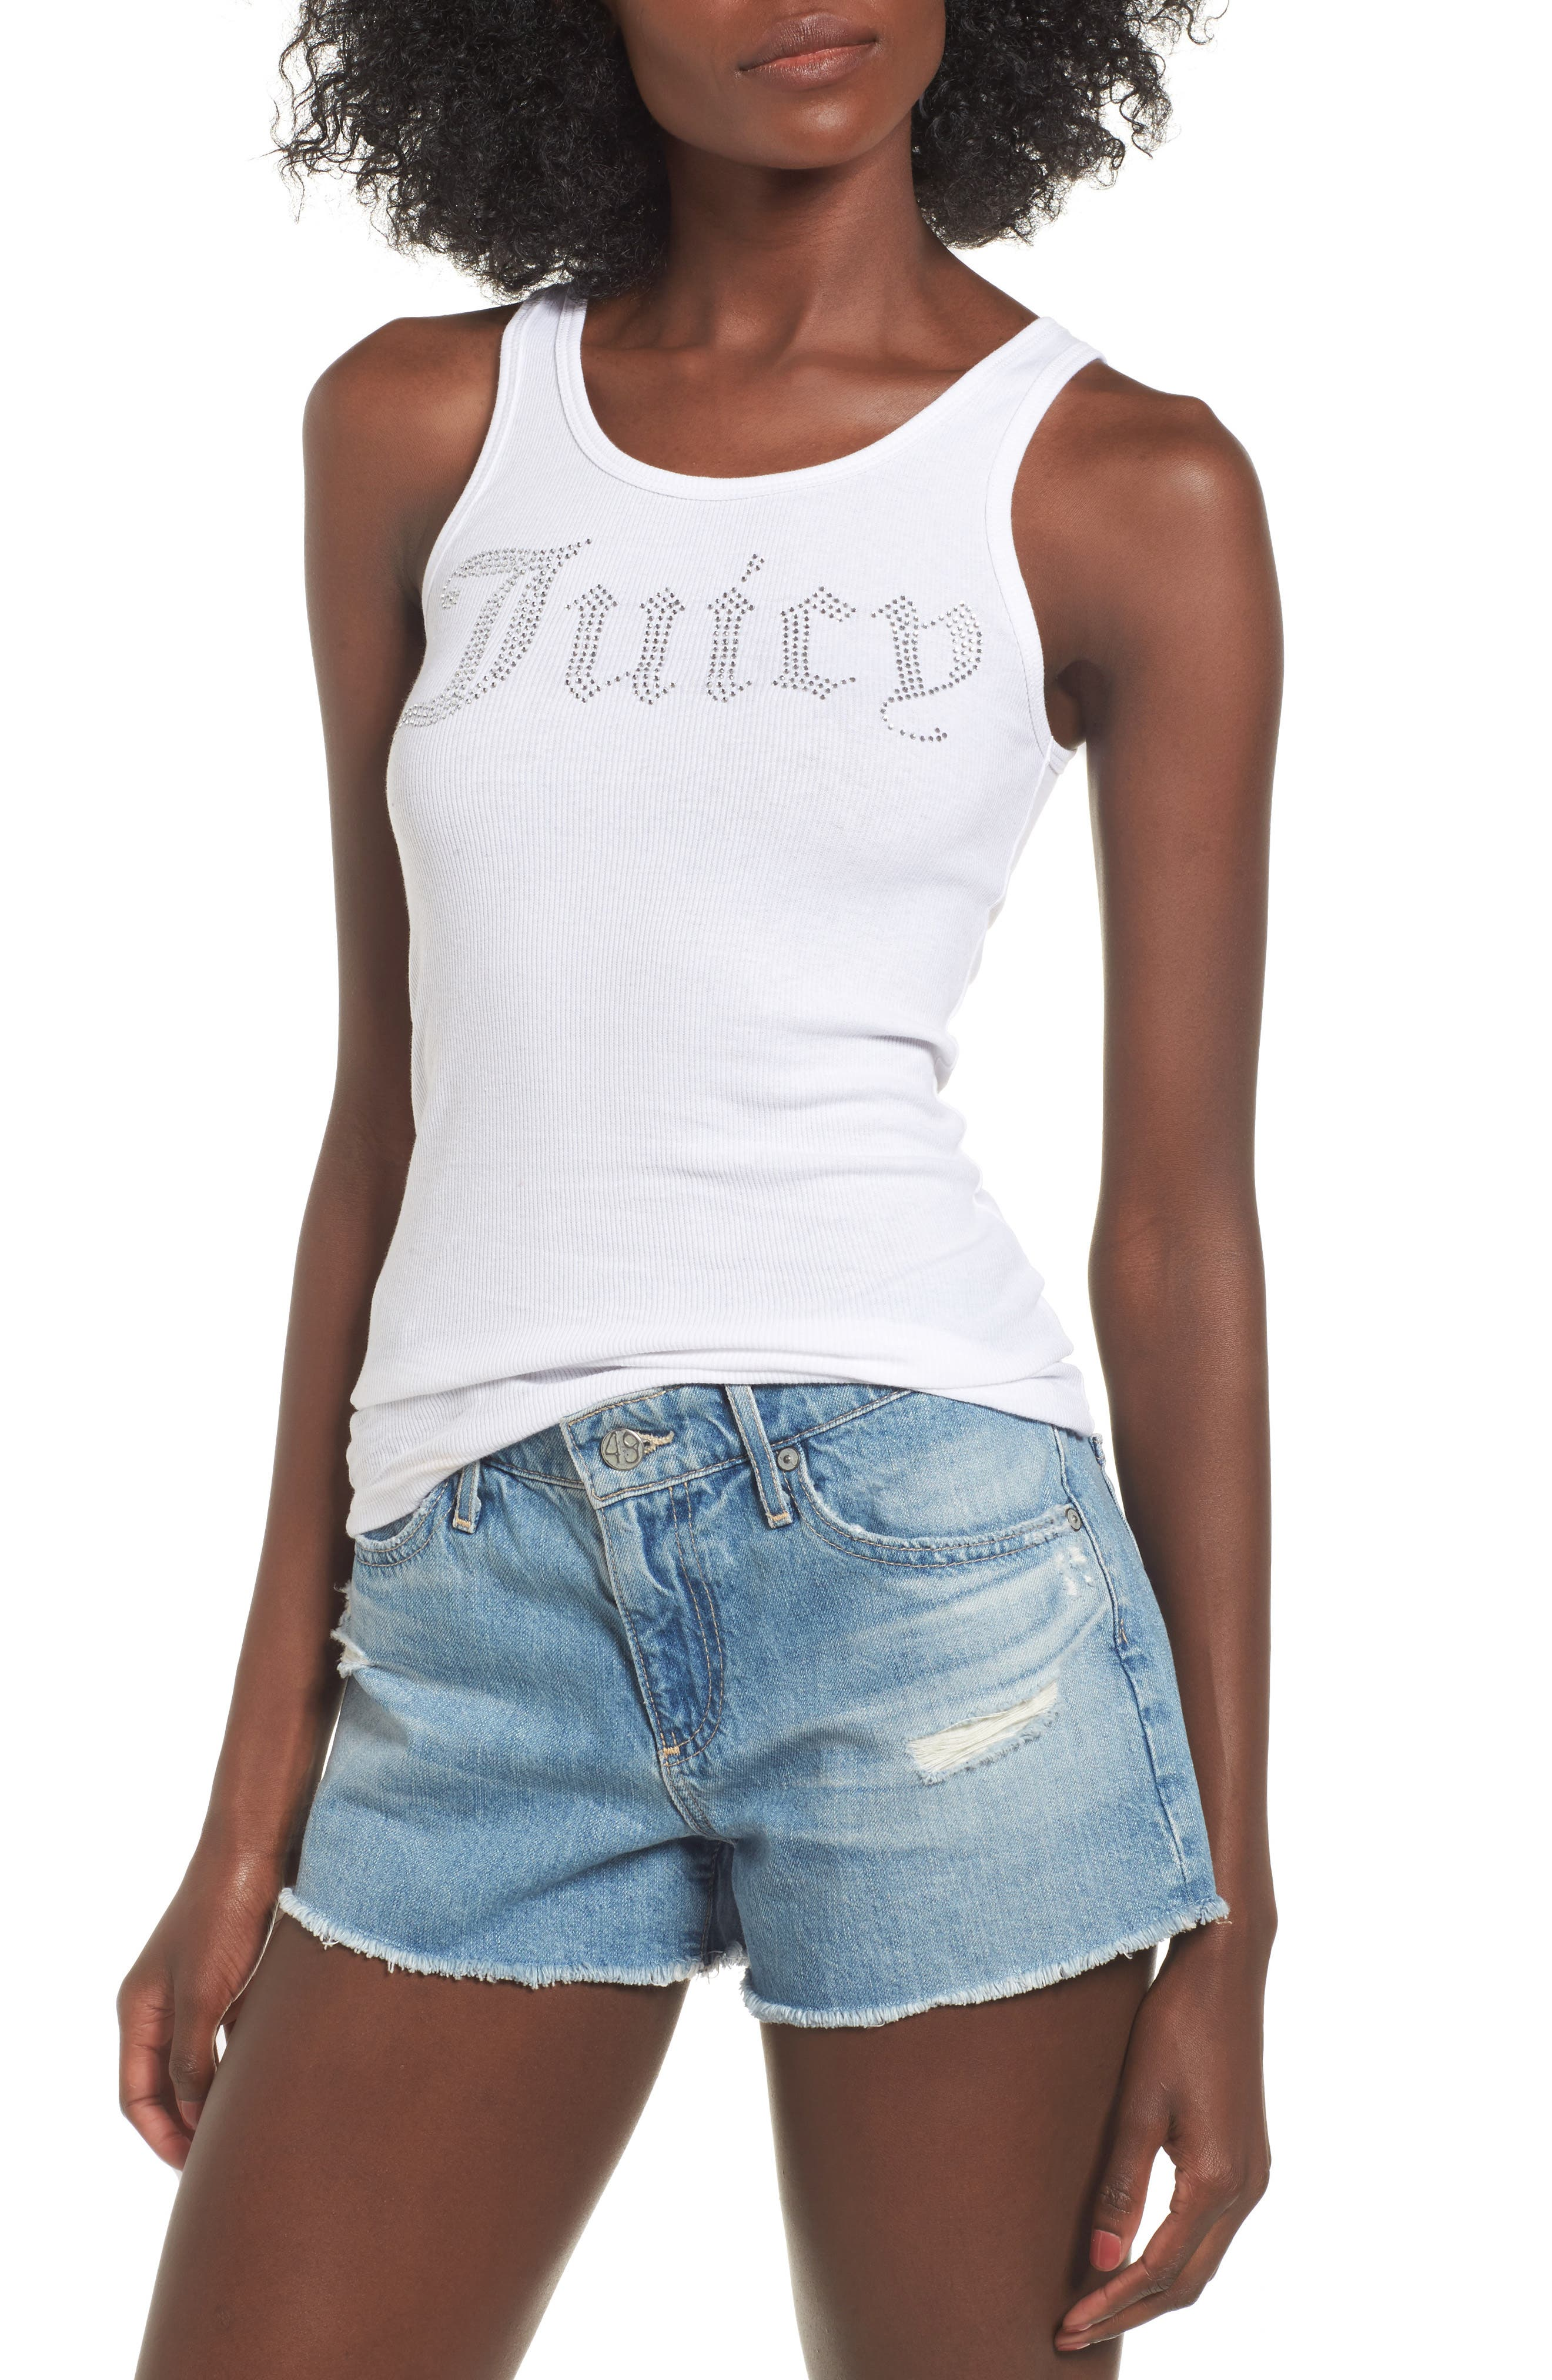 Main Image - Juicy Couture Juicy Gothic Embellished Tank